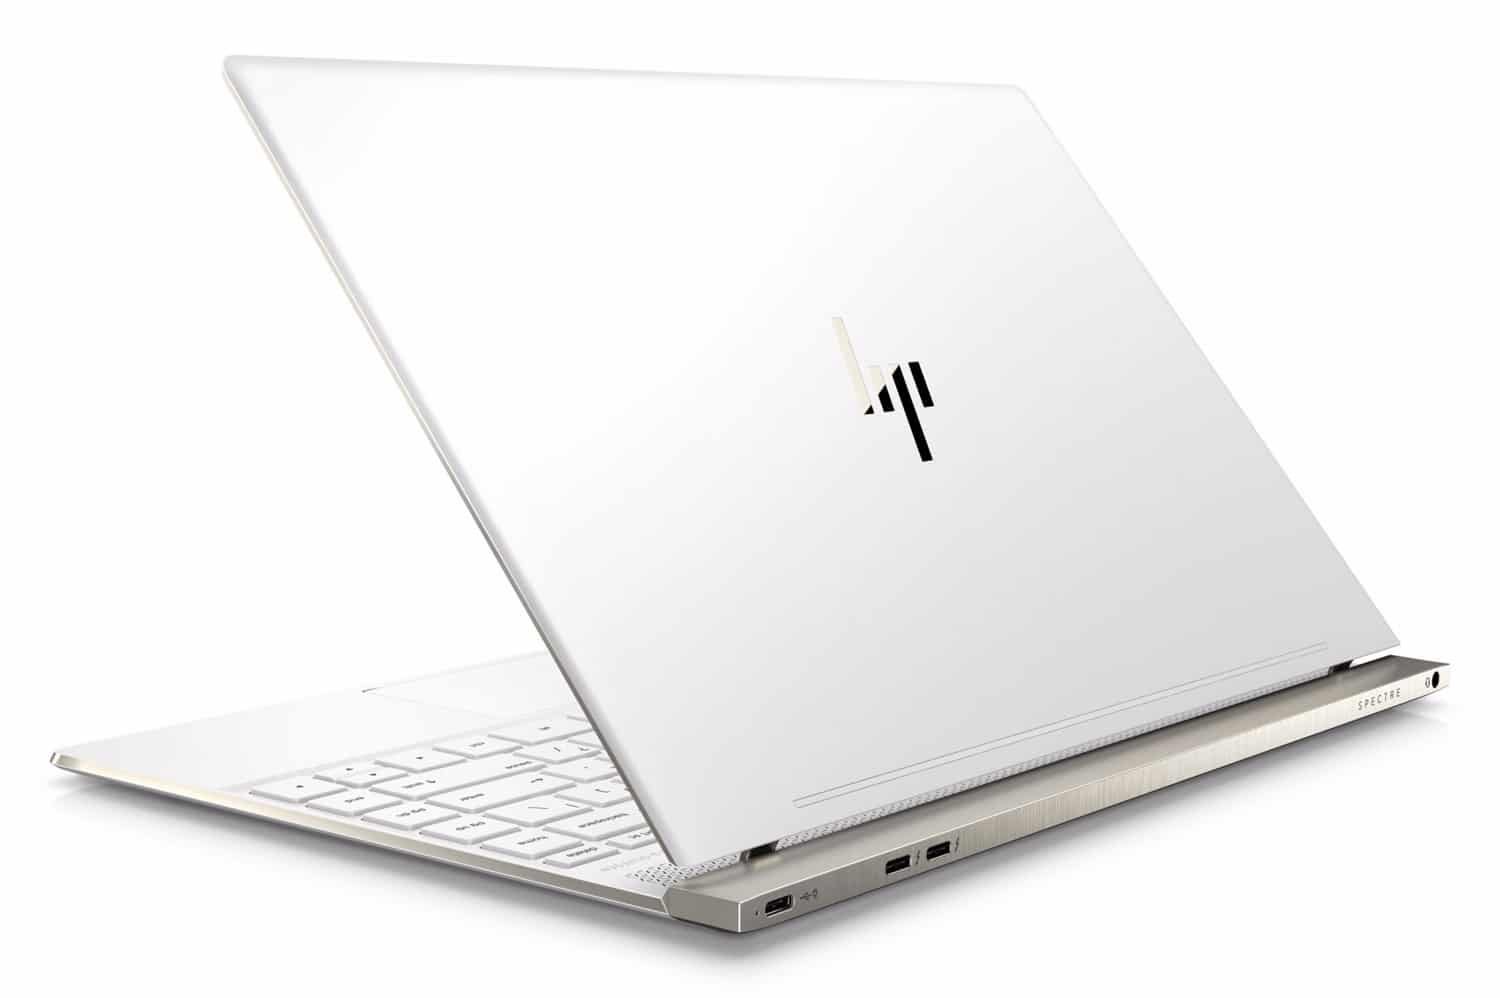 HP Spectre 13-af000nf, Ultrabook 13 pouces IPS tactile SSD Refresh (1199€)